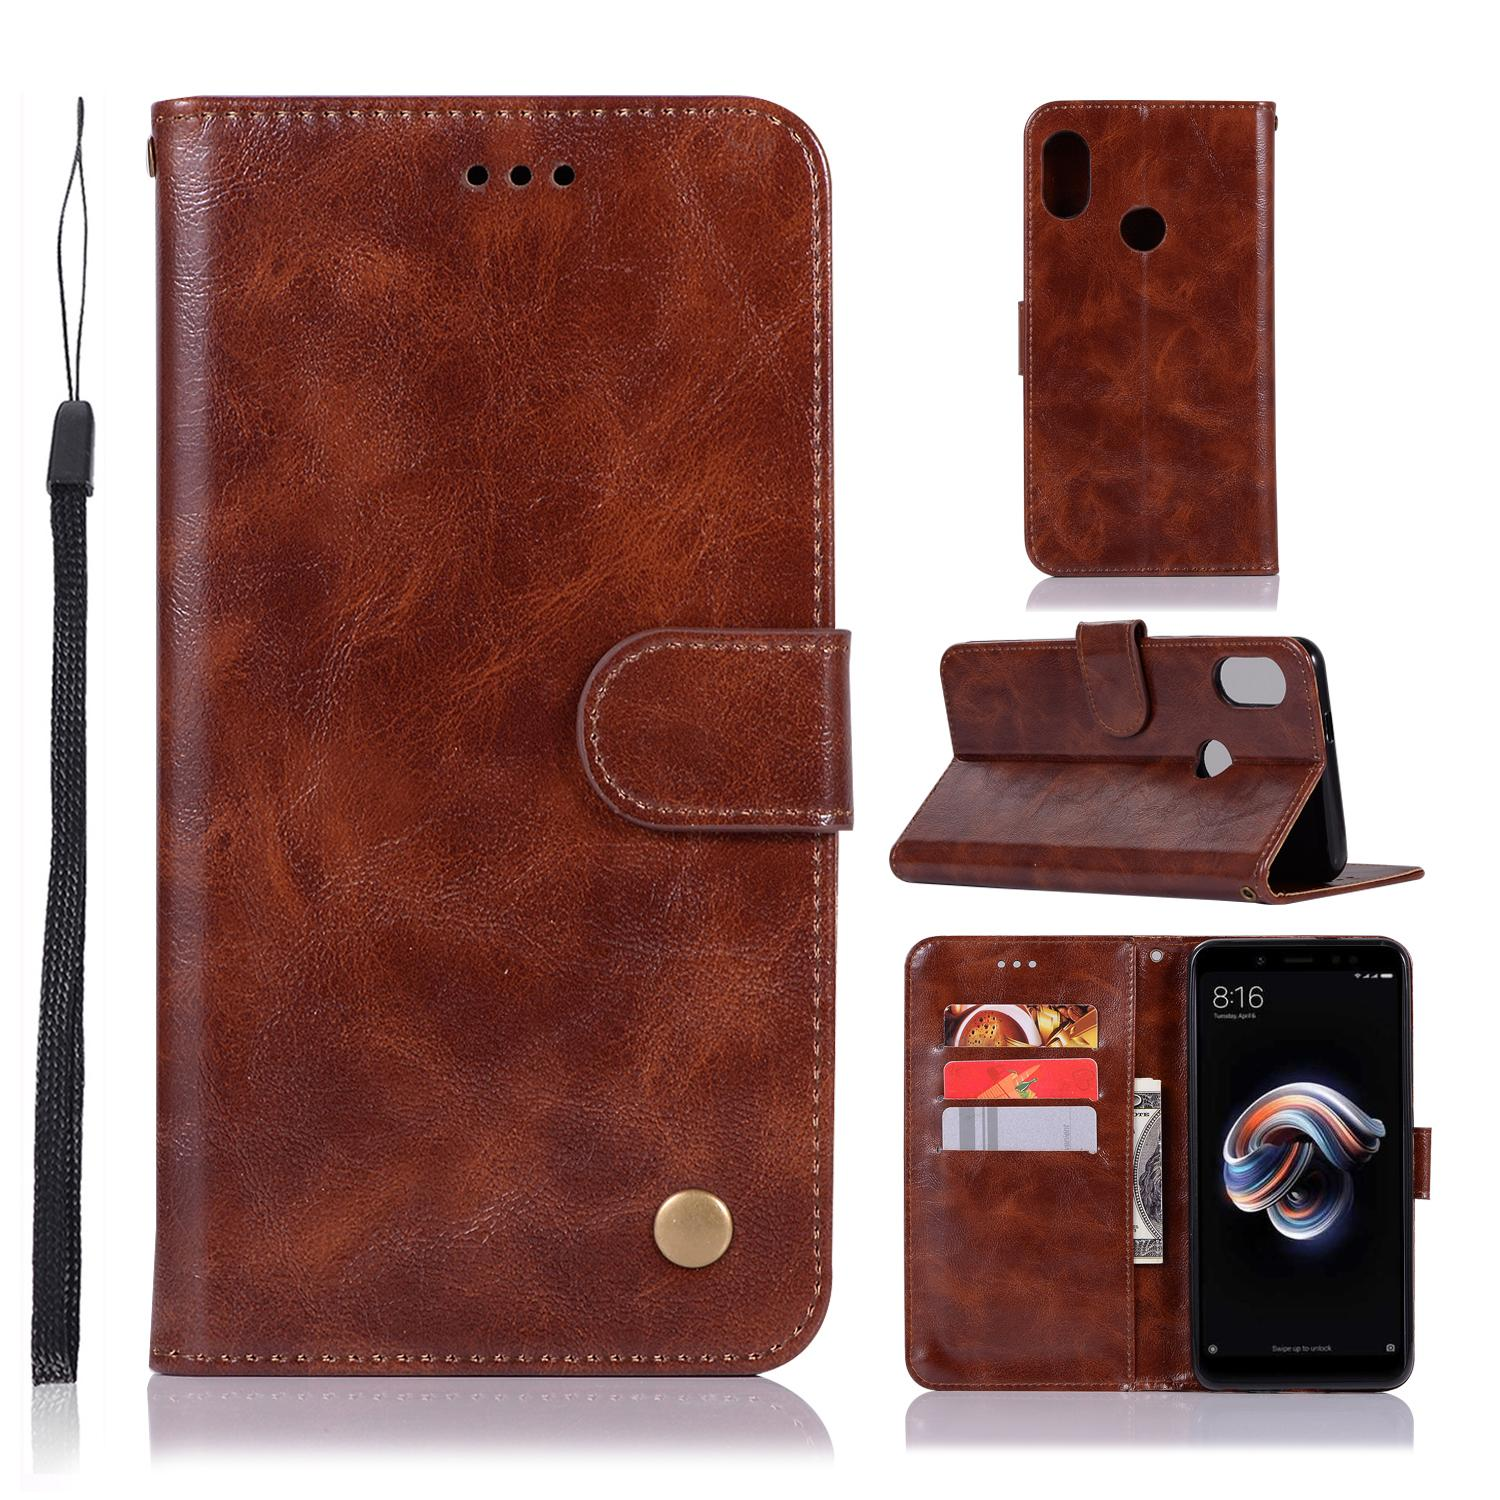 Casing For Xiaomi Redmi Note 5 Pro,reto Leather Wallet Case Magnetic Double Card Holder Flip Cover By Life Goes On.